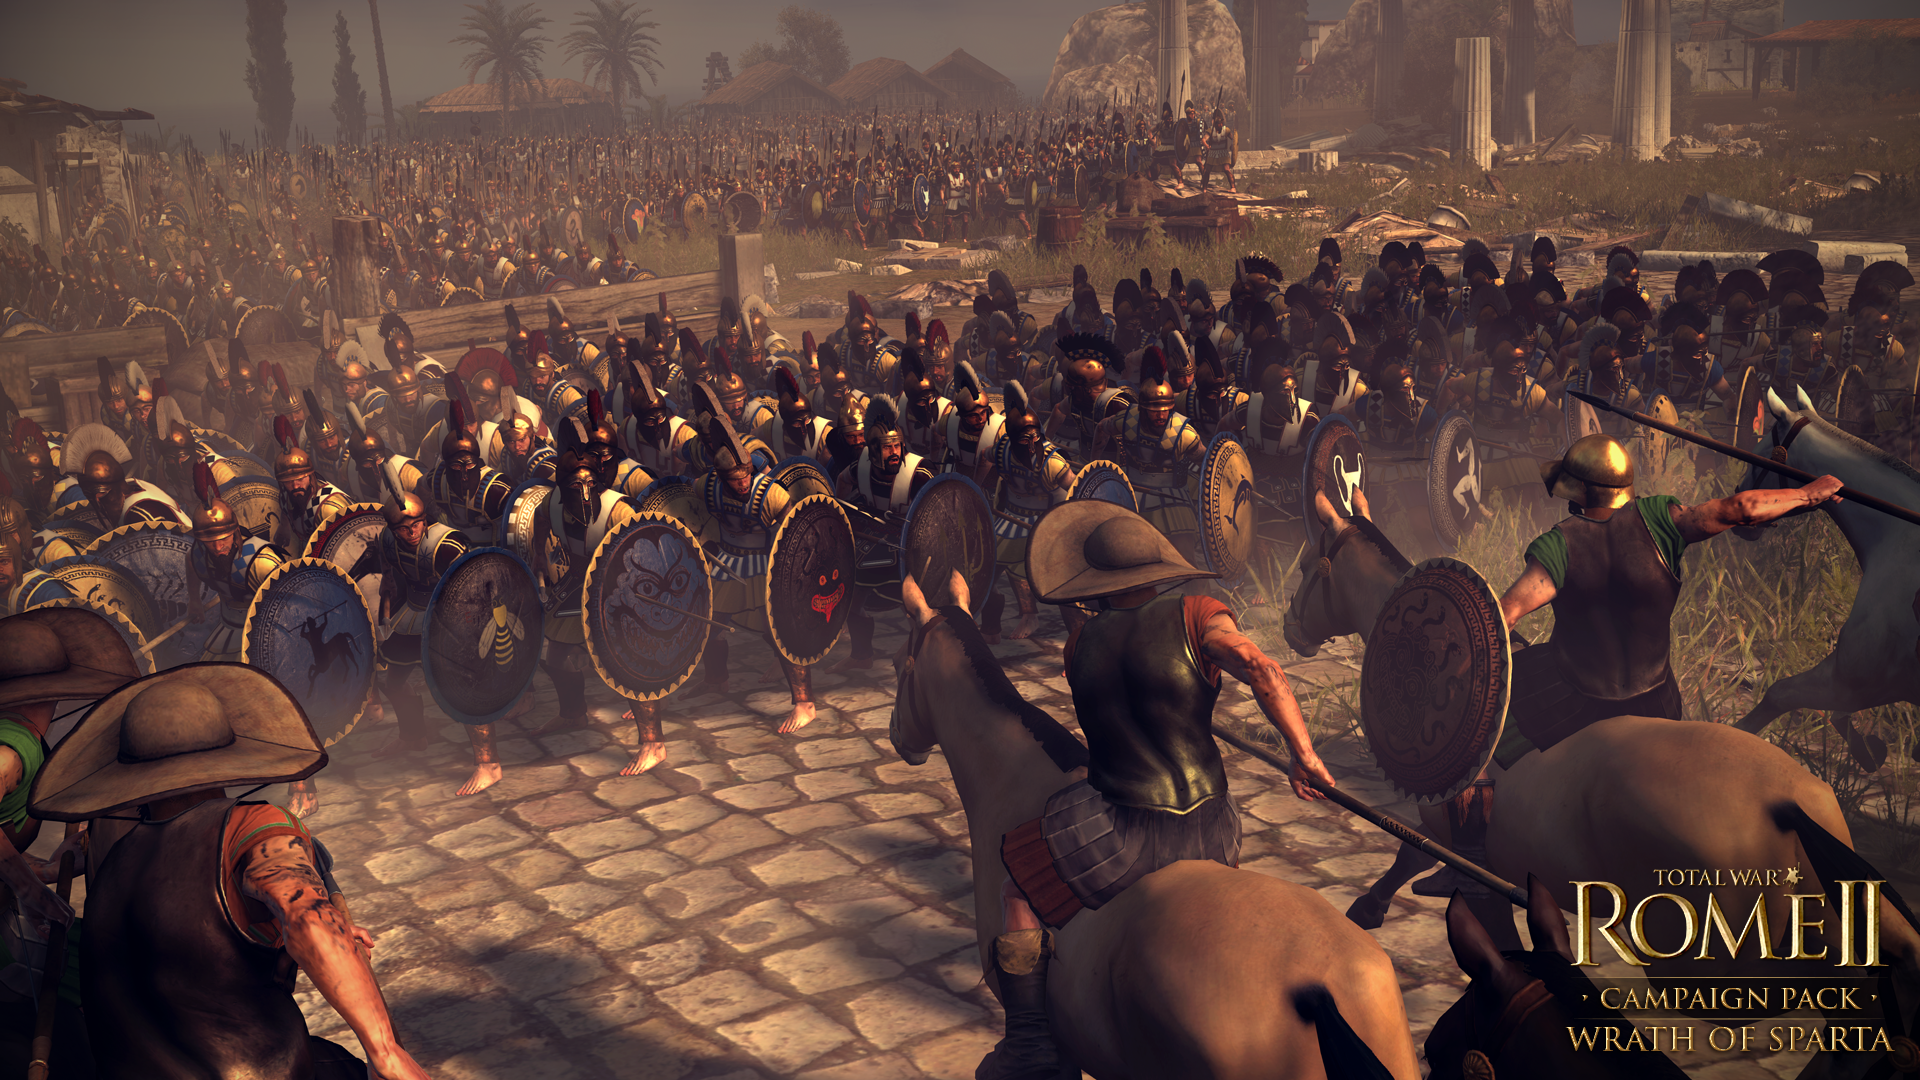 Total War Rome 2 Spartan 1494426 Hd Wallpaper Backgrounds